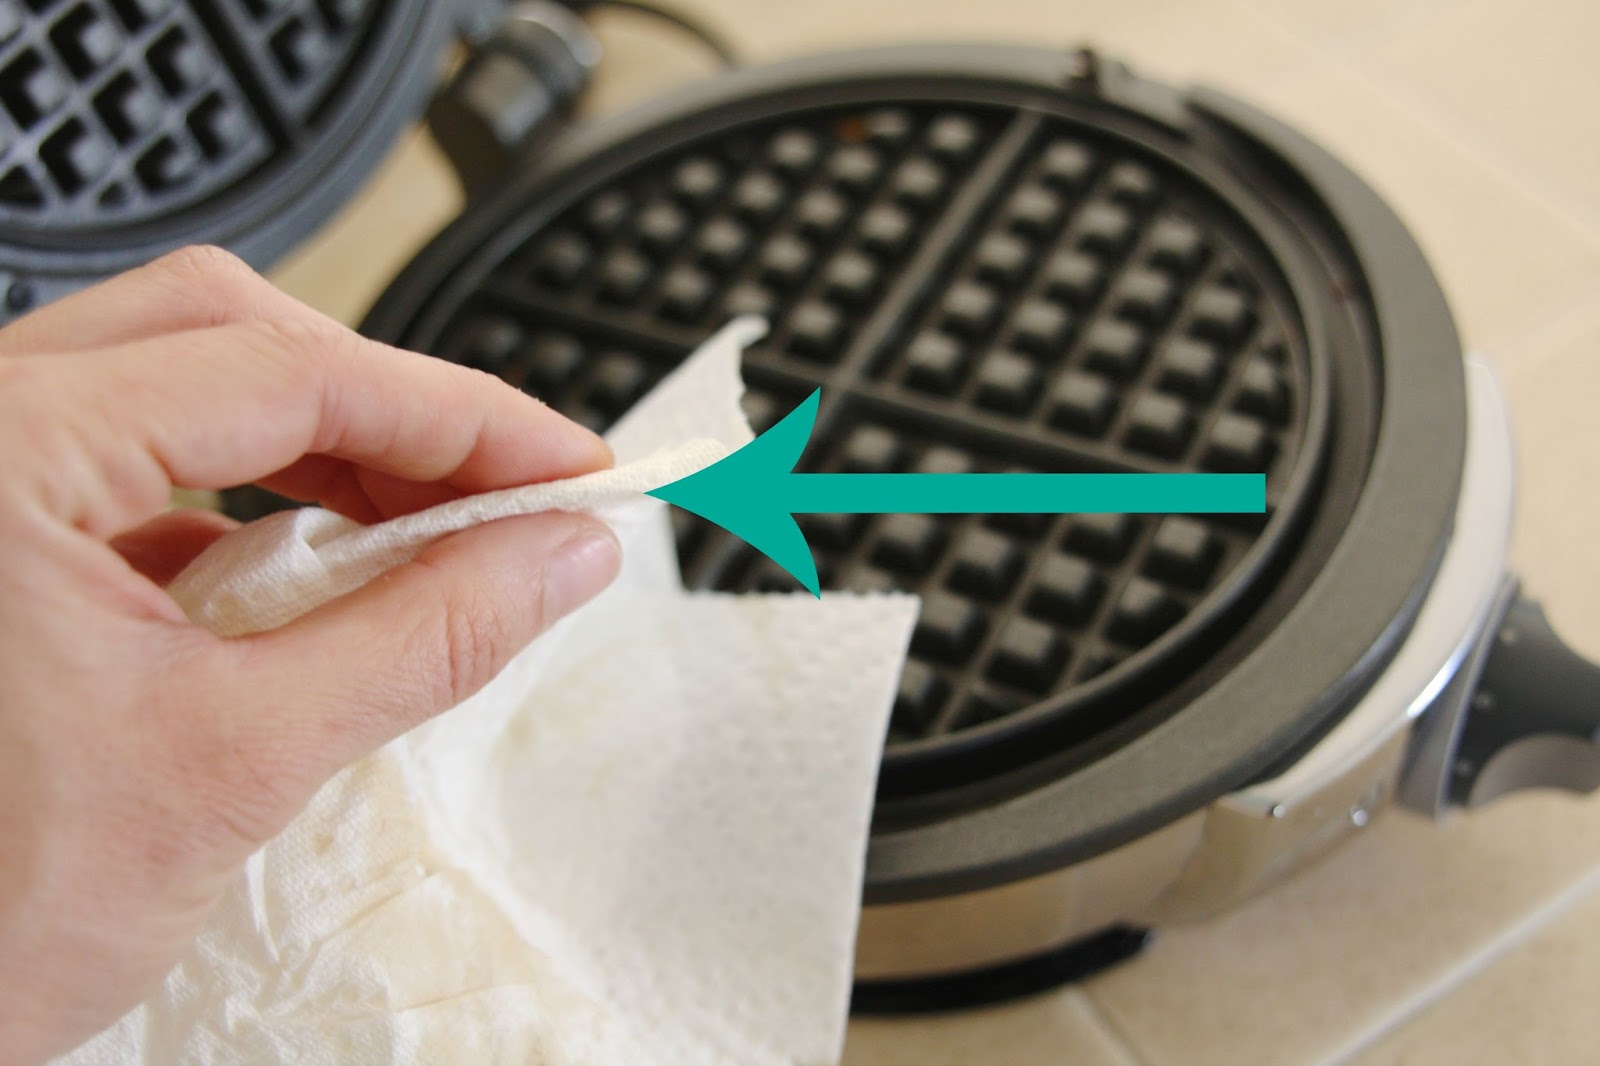 How To Clean A Waffle Iron With Non Removable Plates Simply Organized